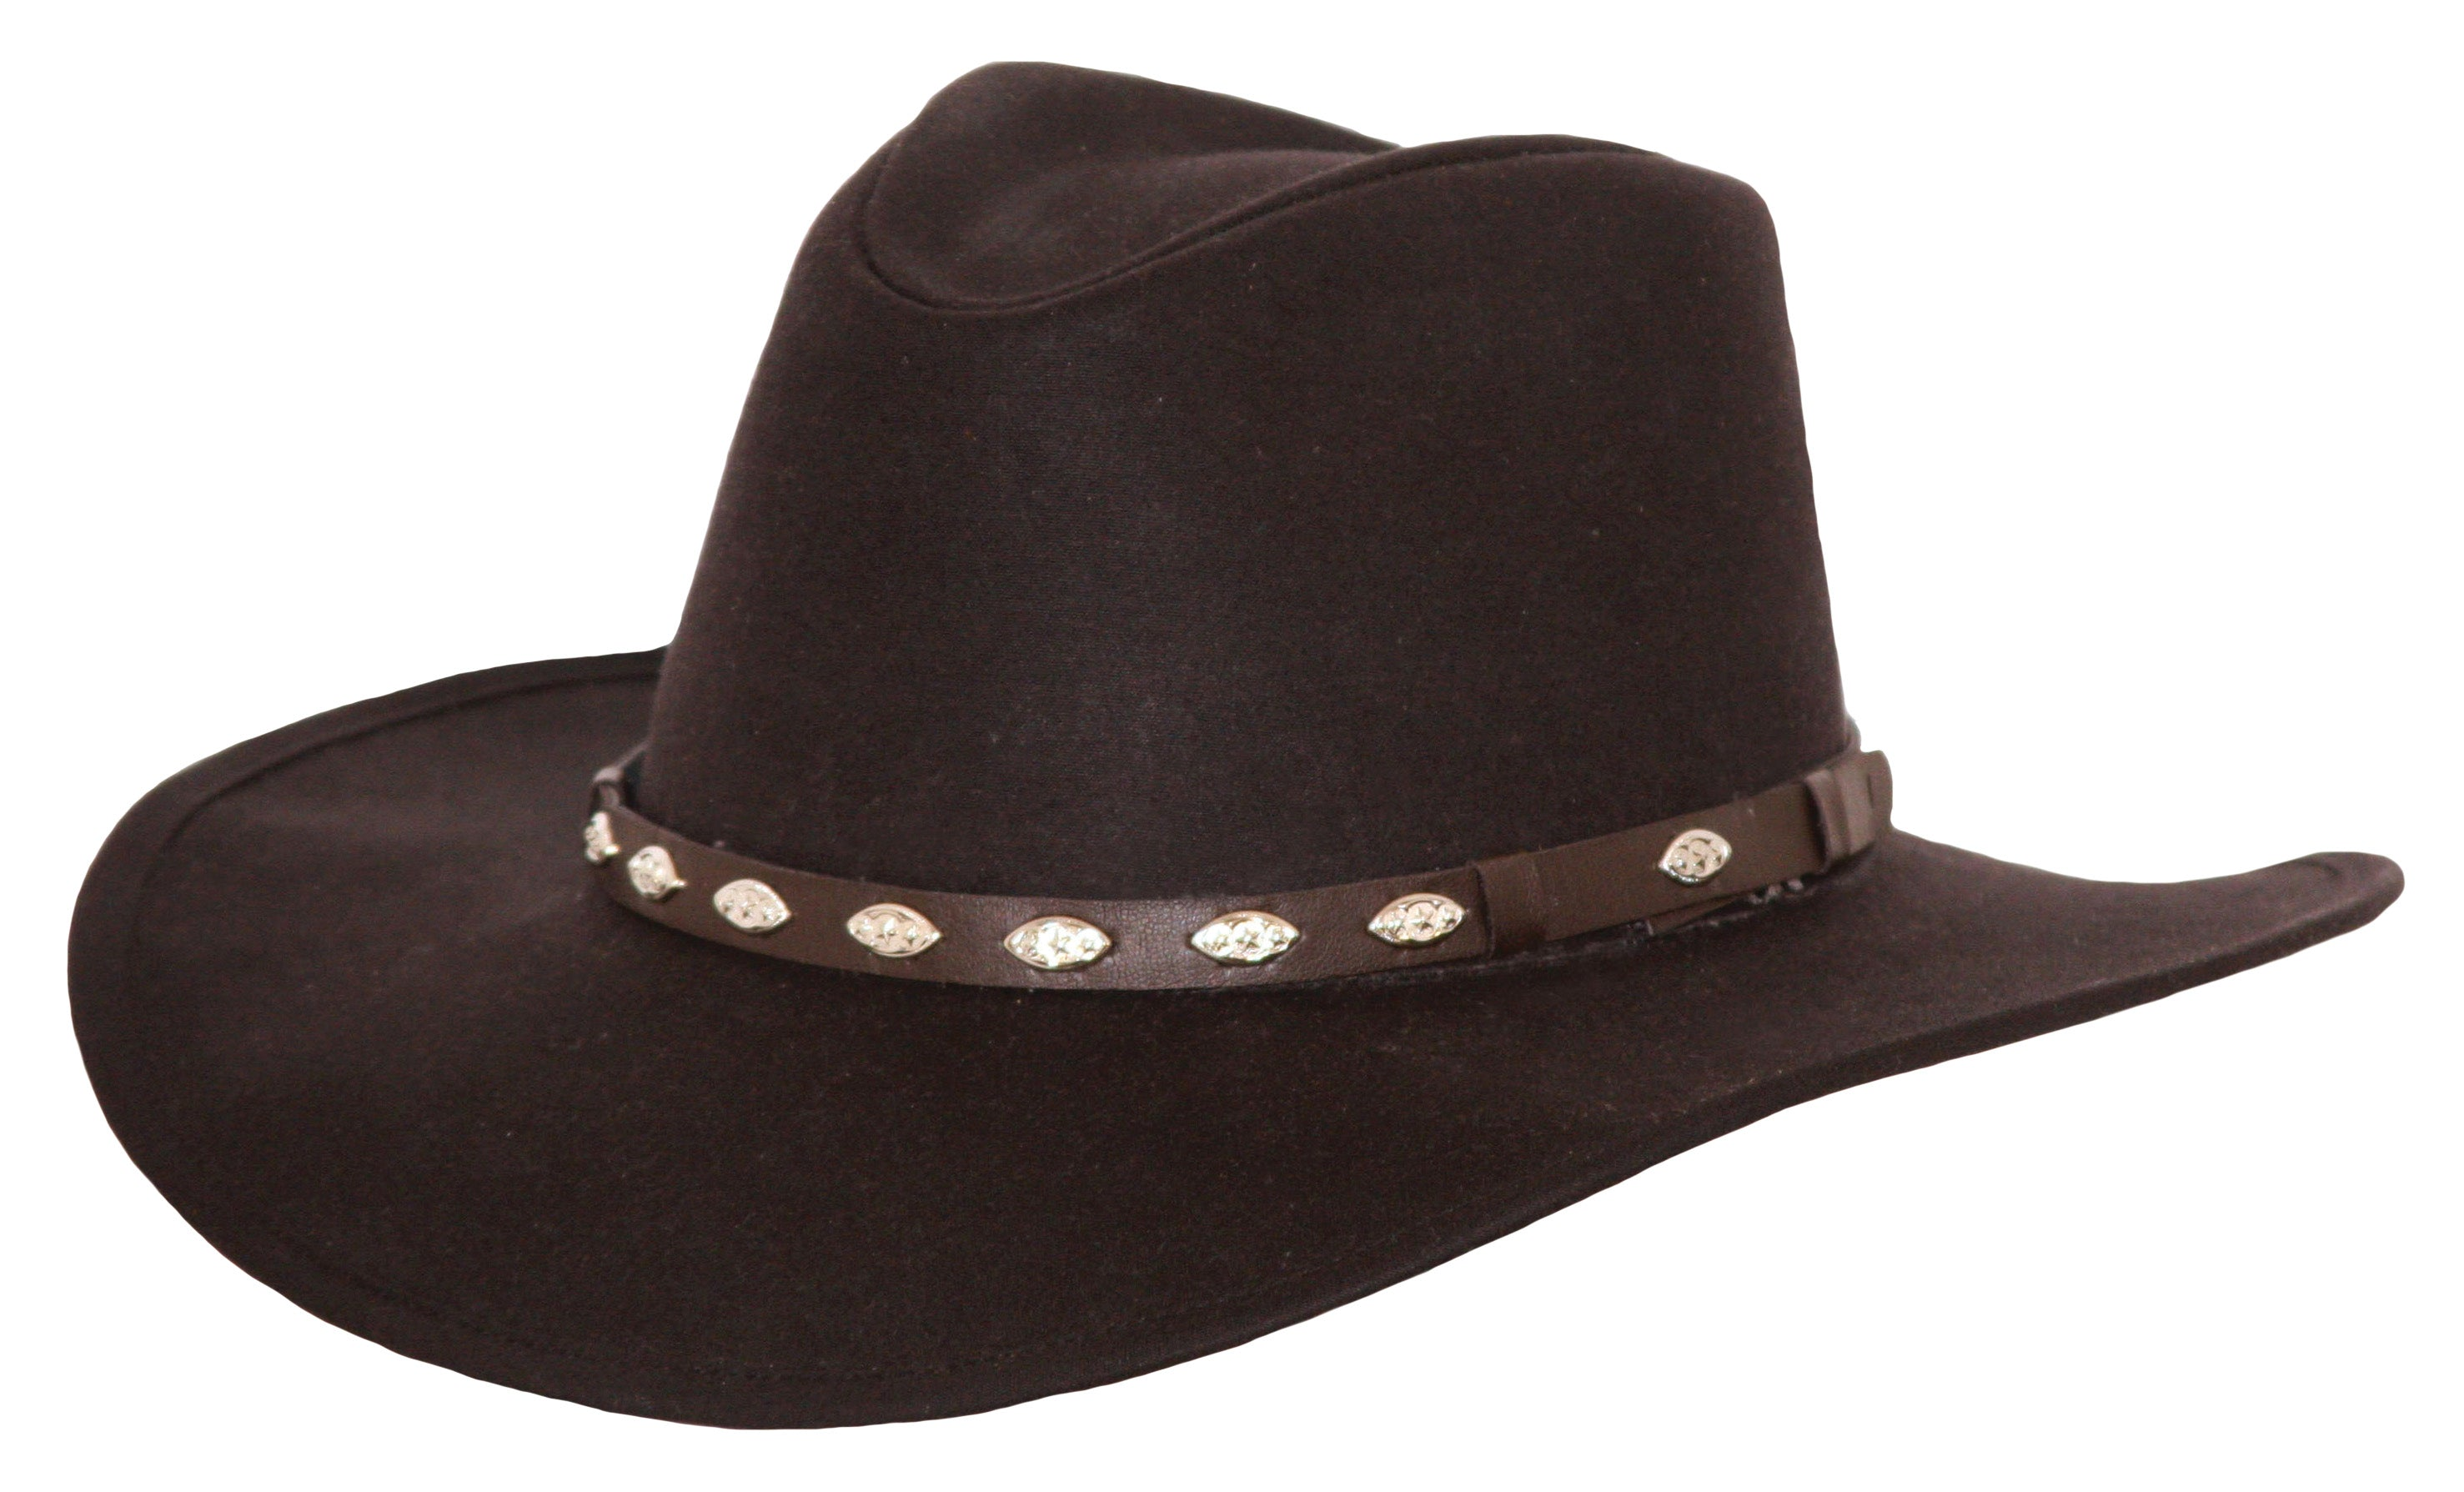 Outback Trading Co. Badlands Mens Hat Brown 100% Cotton UPF50 4 ... f9ea628d96d